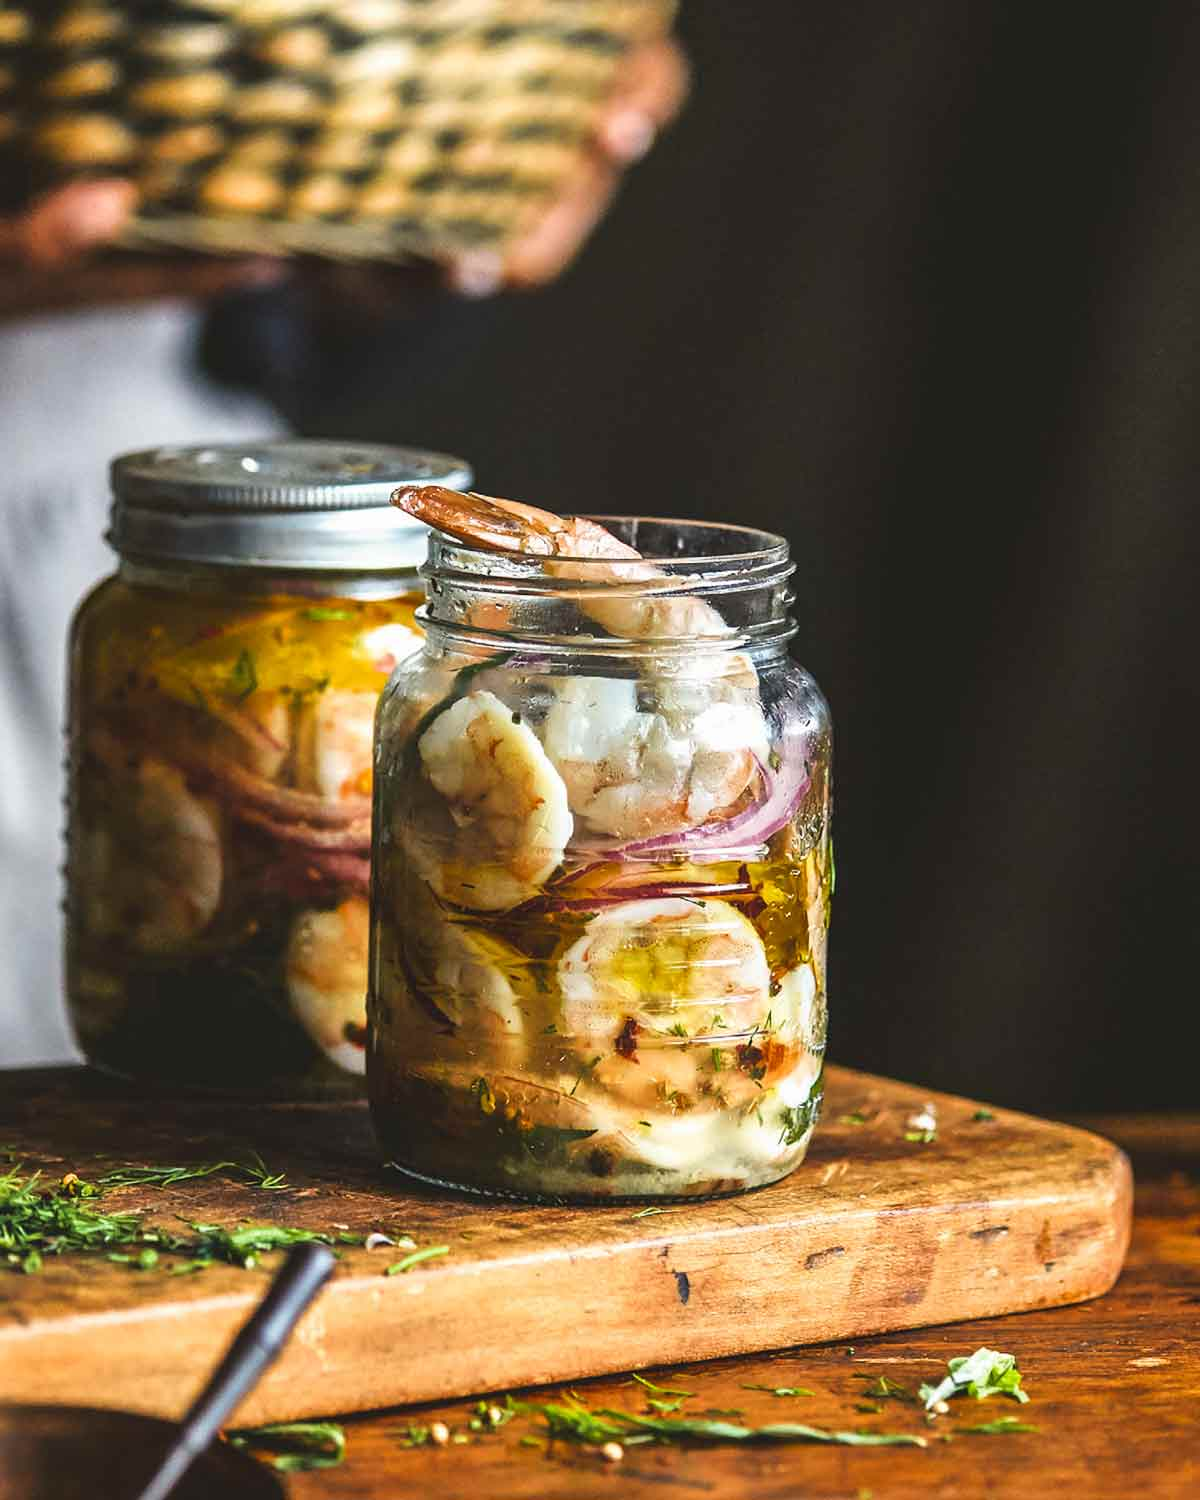 Two jars of pickled shrimp on a wooden cutting board.